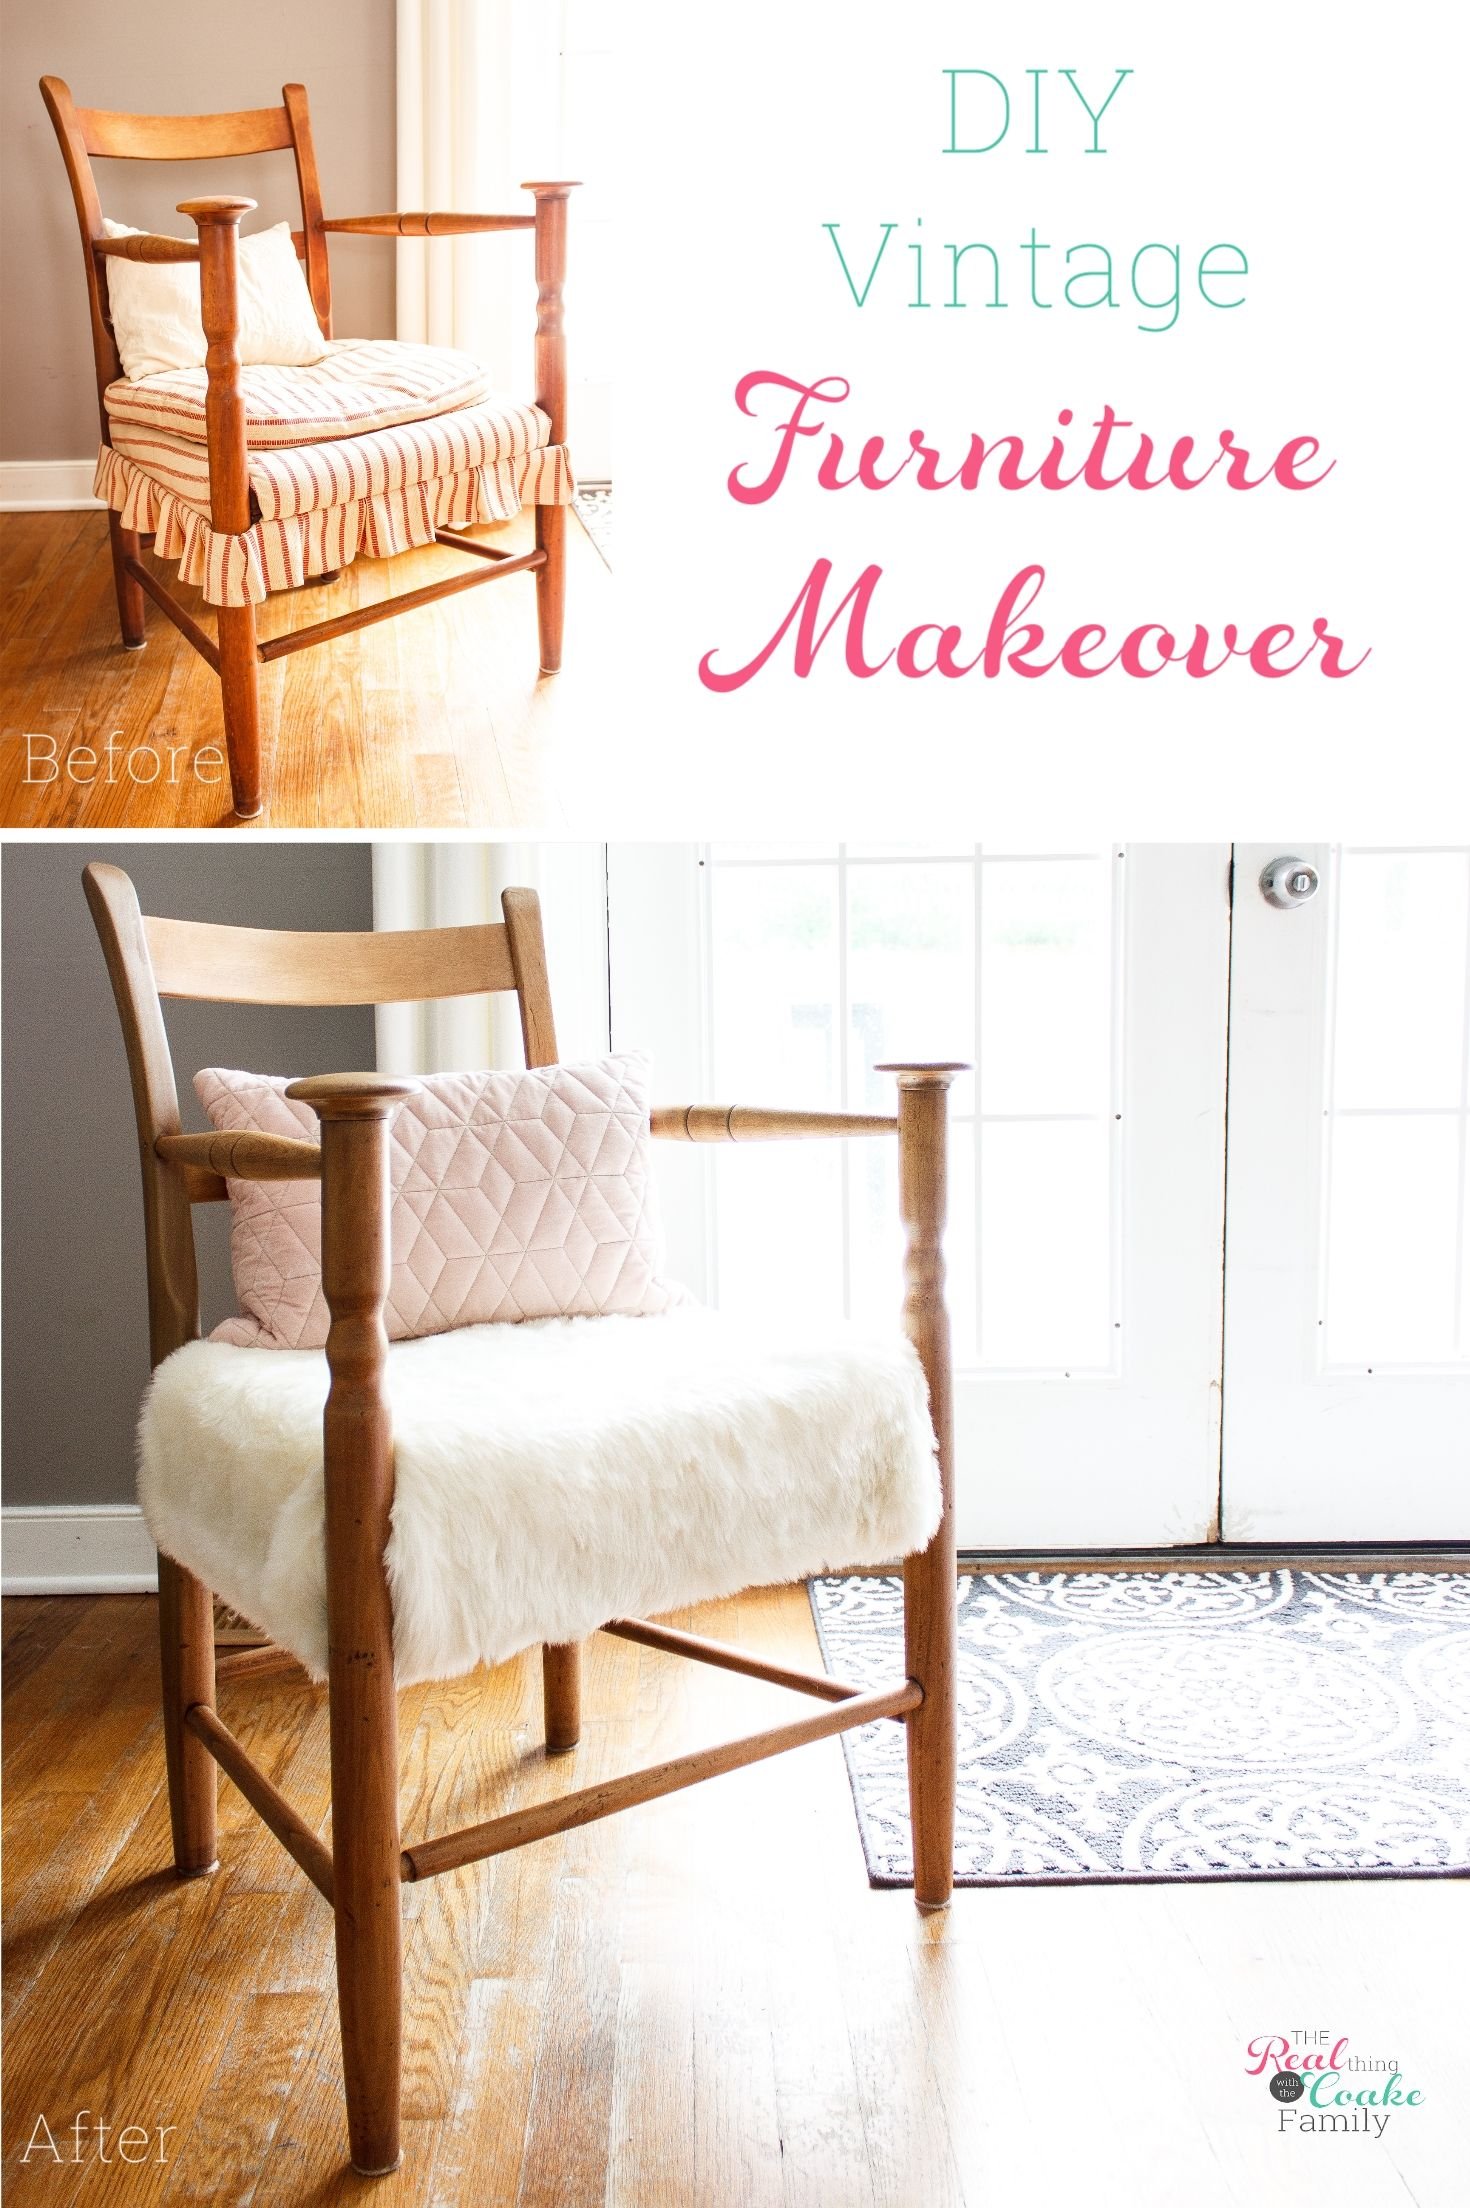 How to Refinish Furniture  DIY Chair Makeover is part of Diy chair - Learn how to refinish furniture with this step by step tutorial